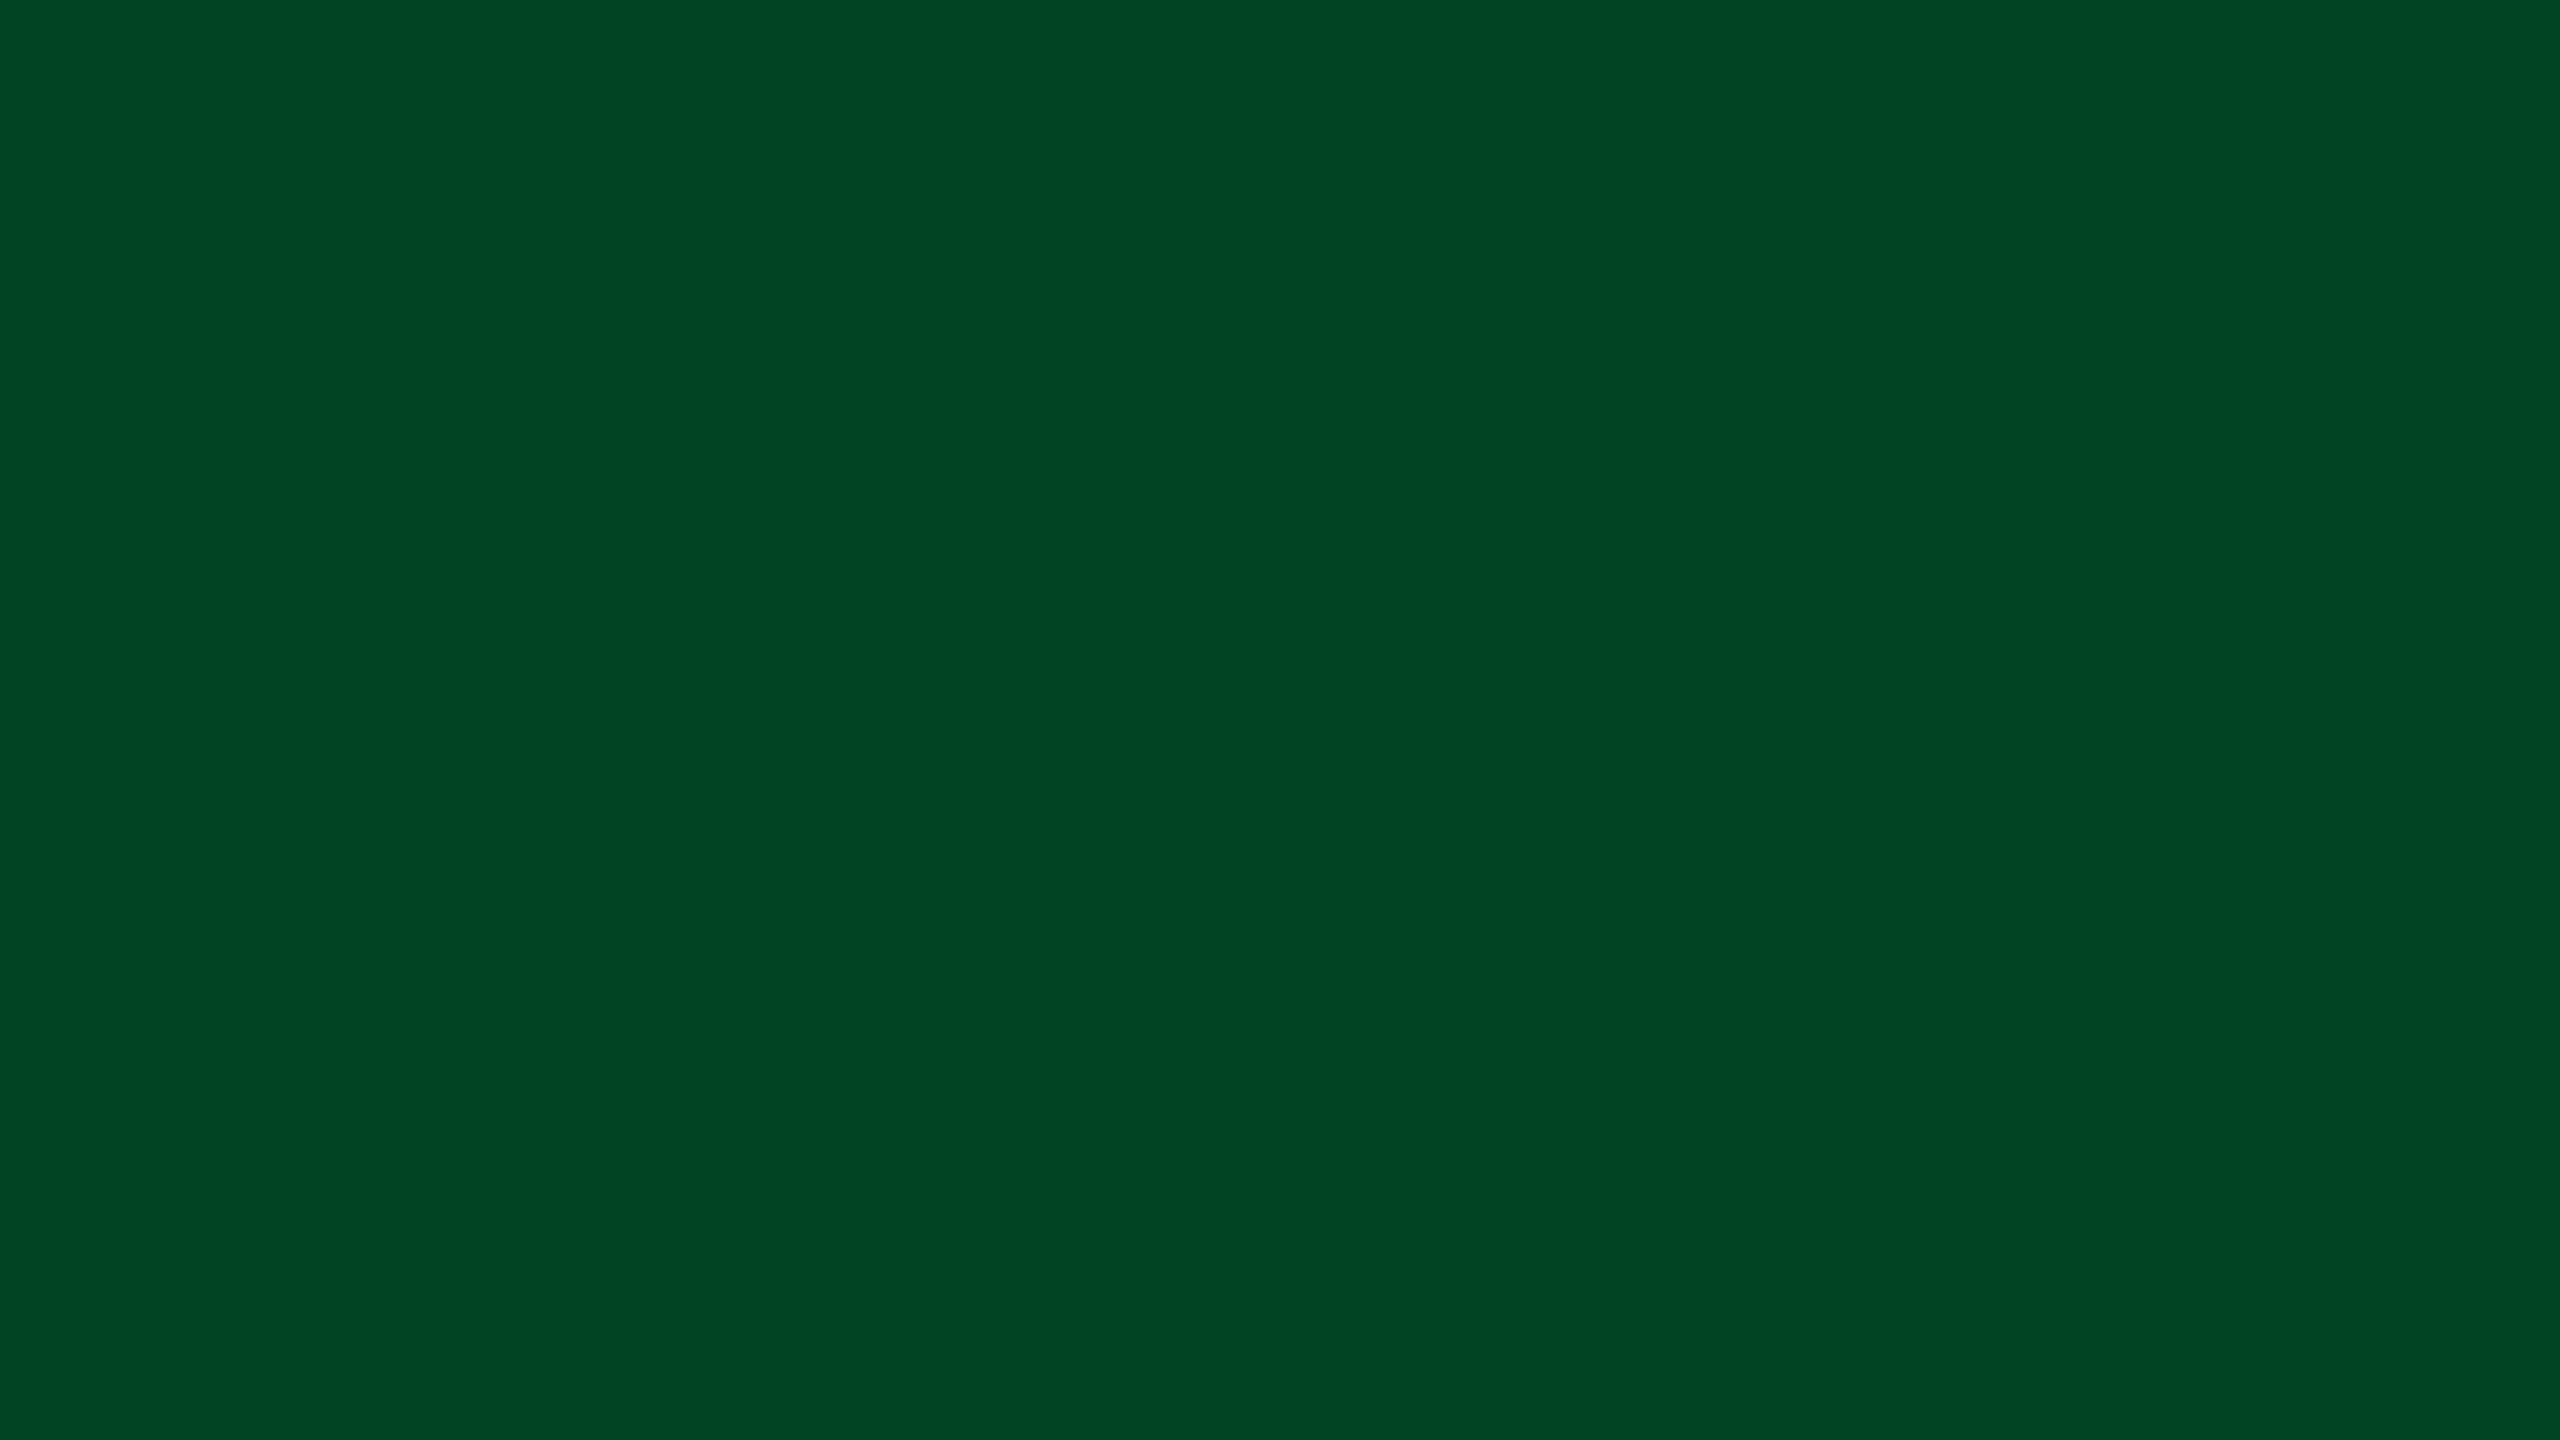 2560x1440 Forest Green Traditional Solid Color Background